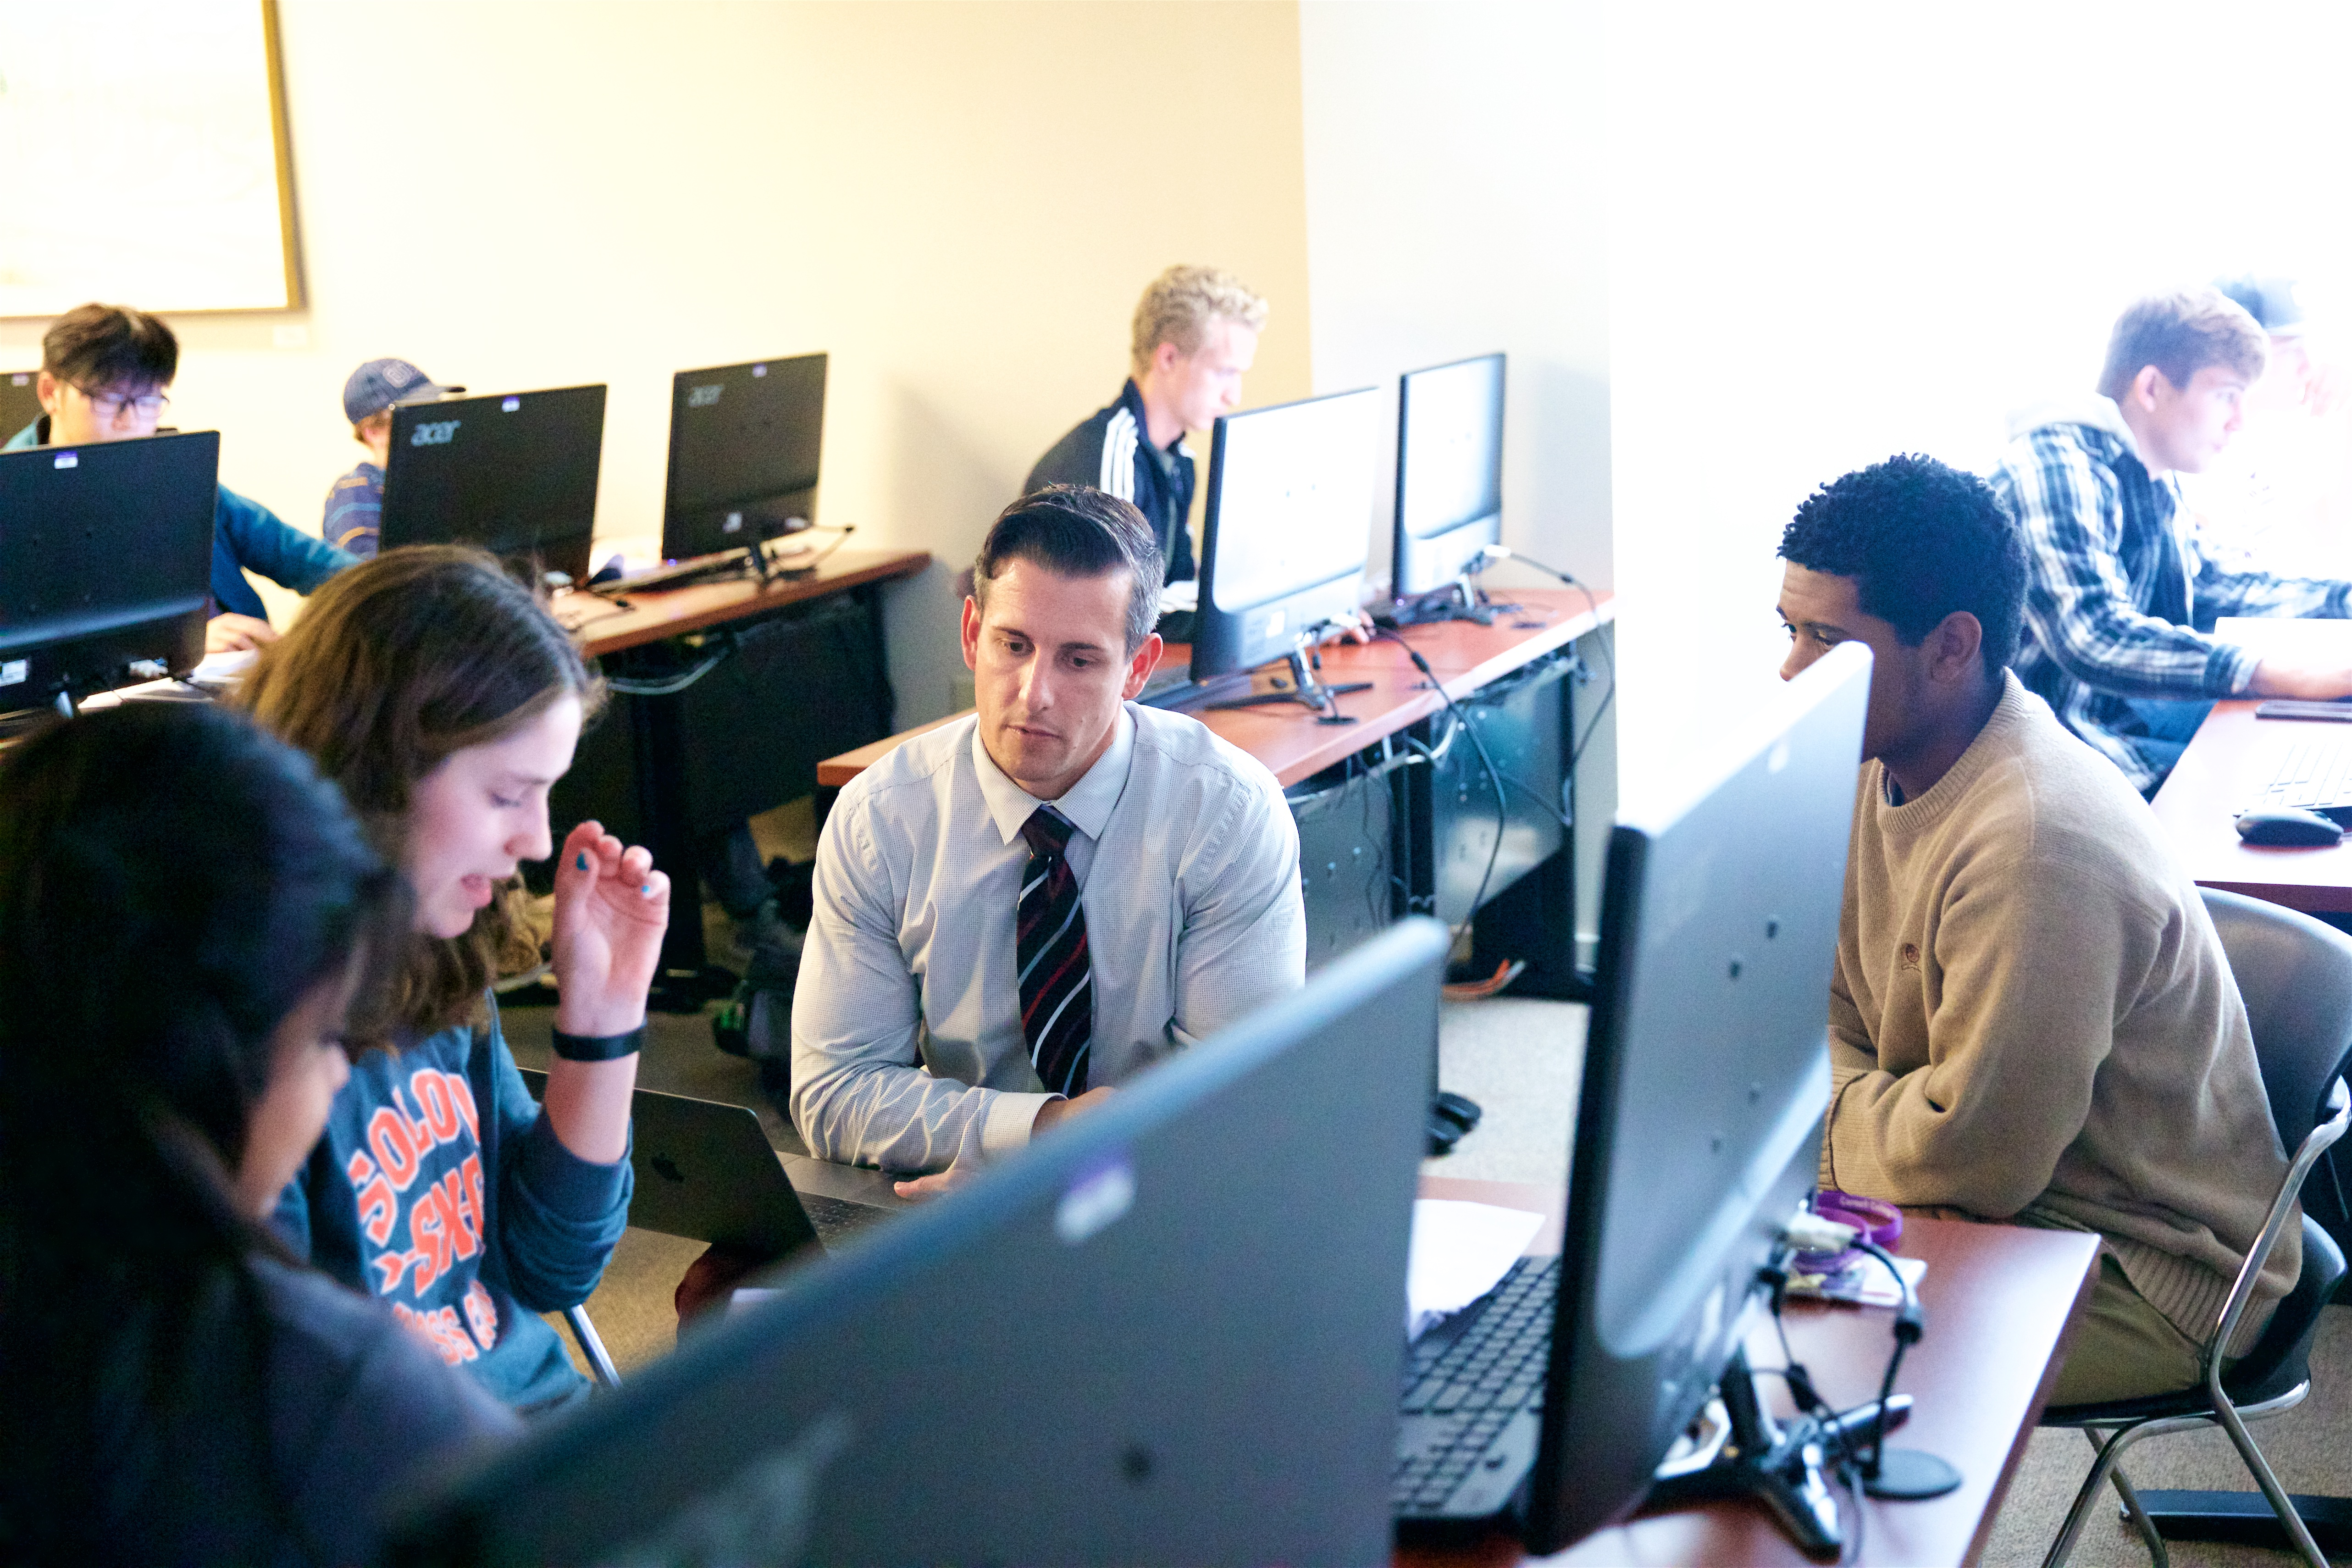 Professor of Engineering Brian Johns (center) consults with a student team designing a new type of dustpan. (Photo by Allan Recalde)